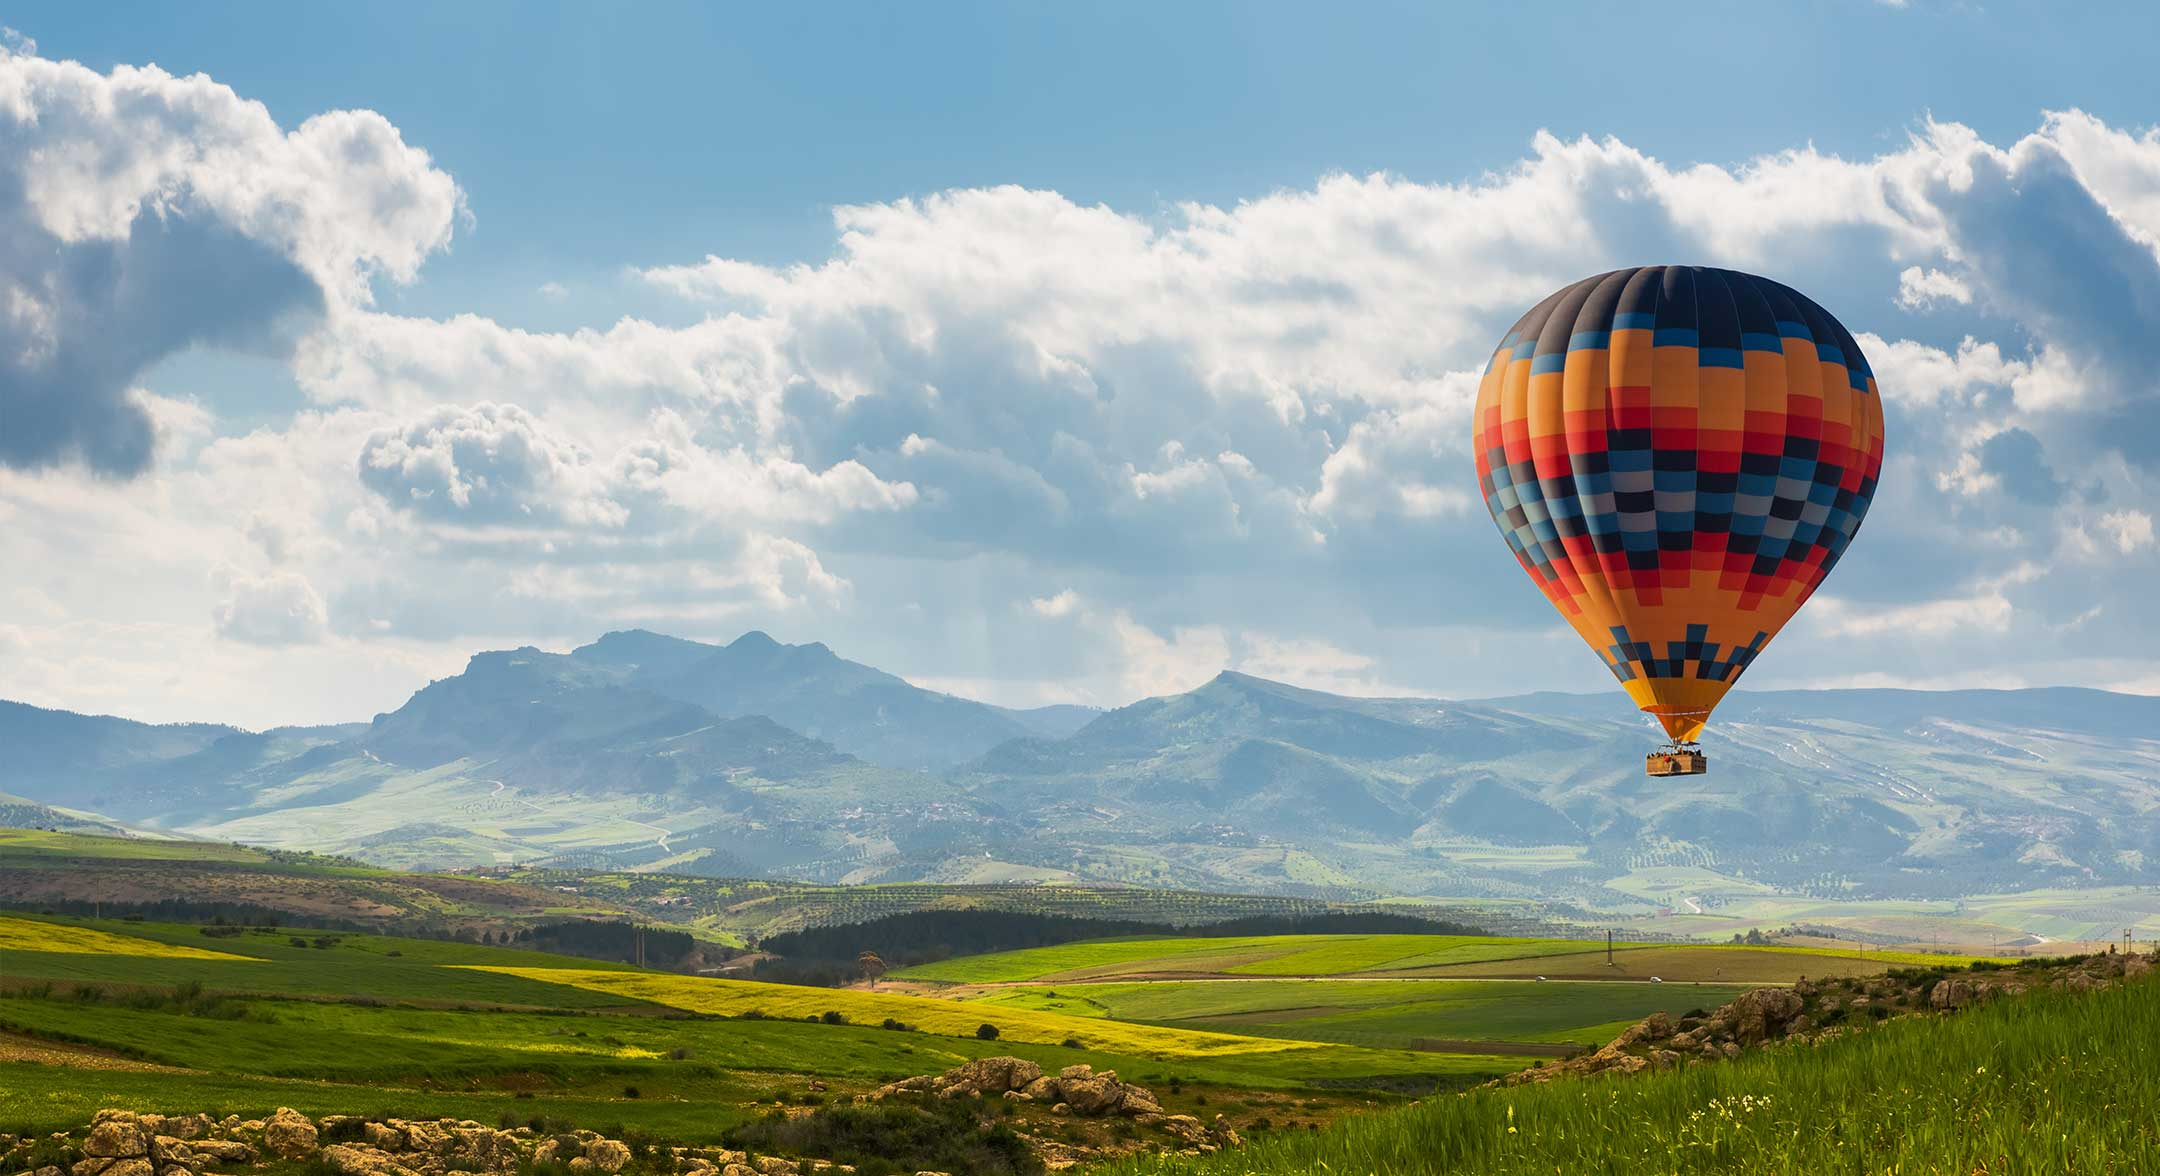 Aztec patterned hot air balloon floating across a blue sky with rolling green hills in the distance